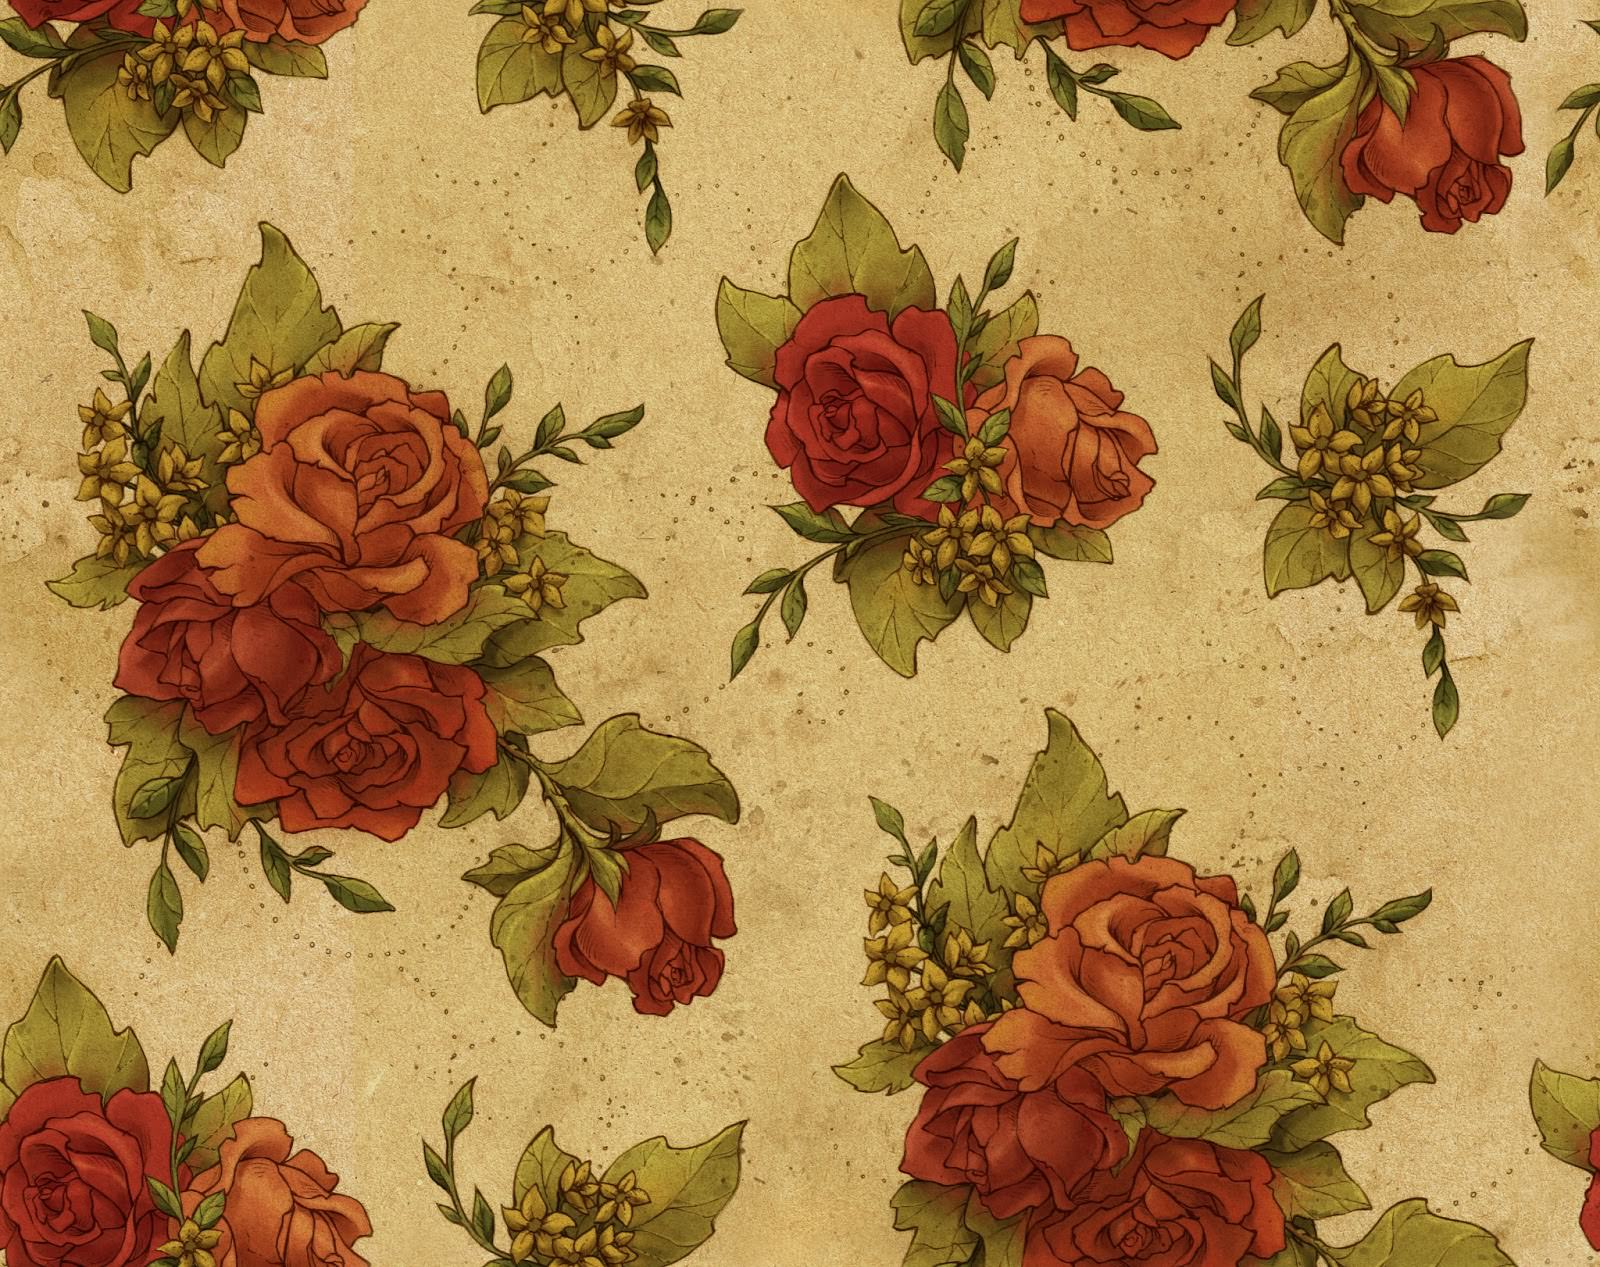 46 Vintage Floral Wallpapers On Wallpapersafari